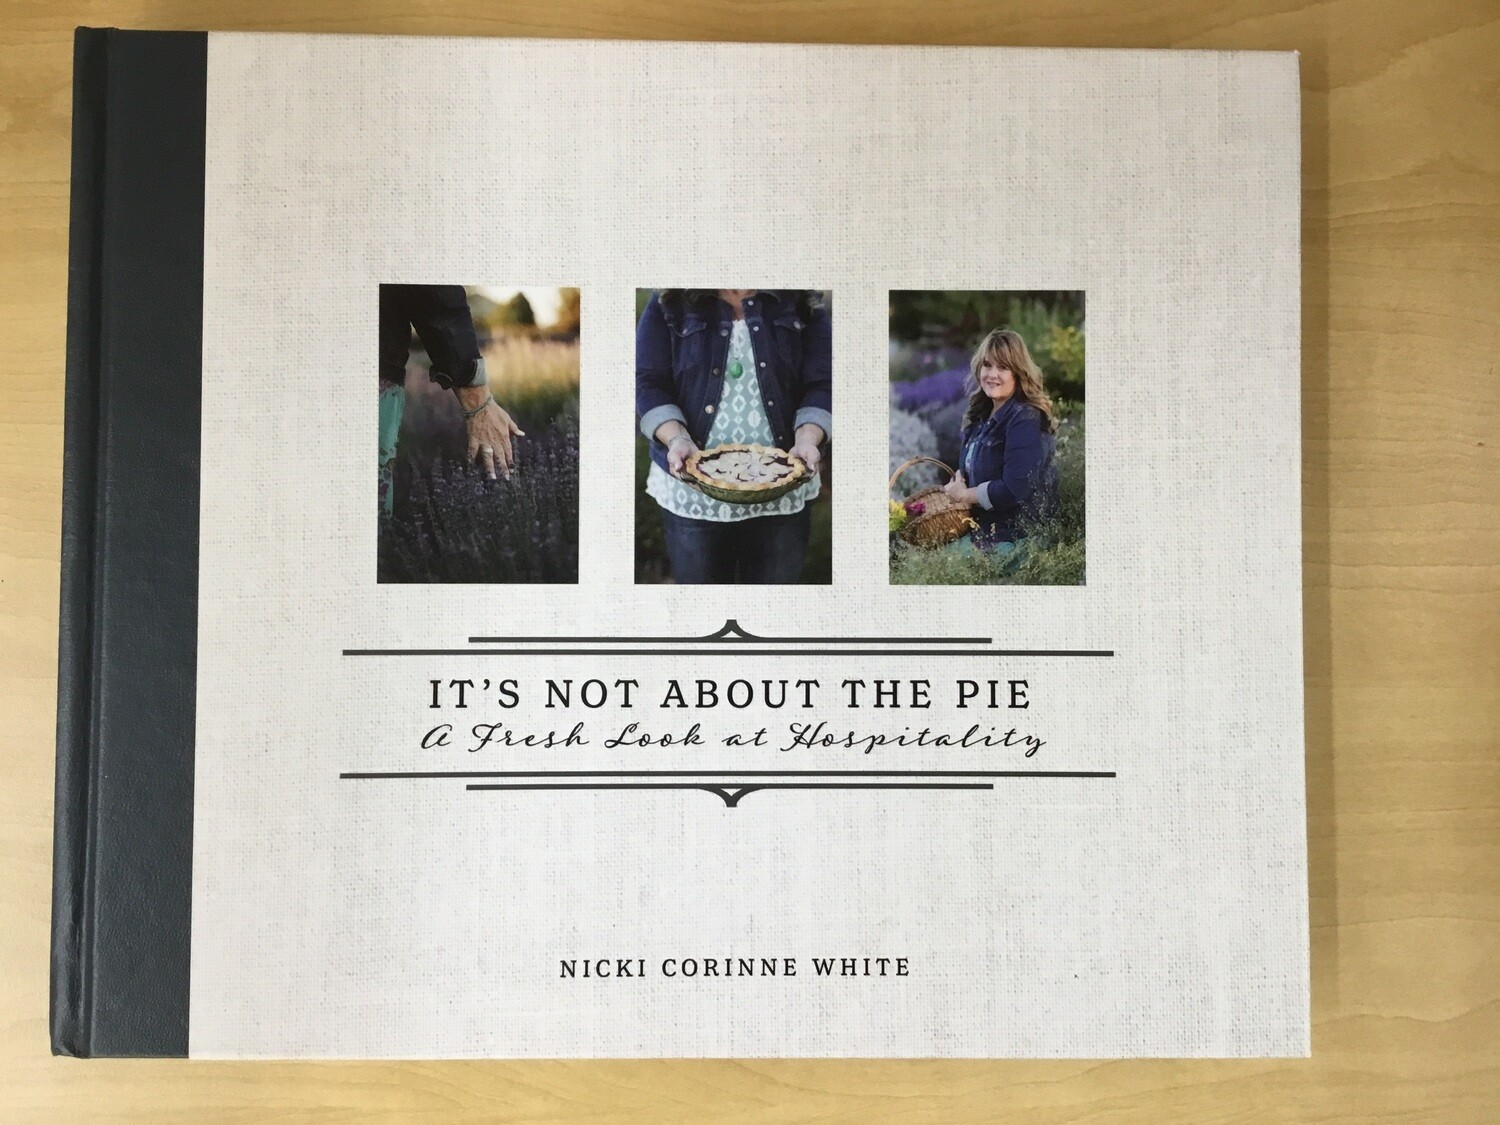 It's Not About the Pie